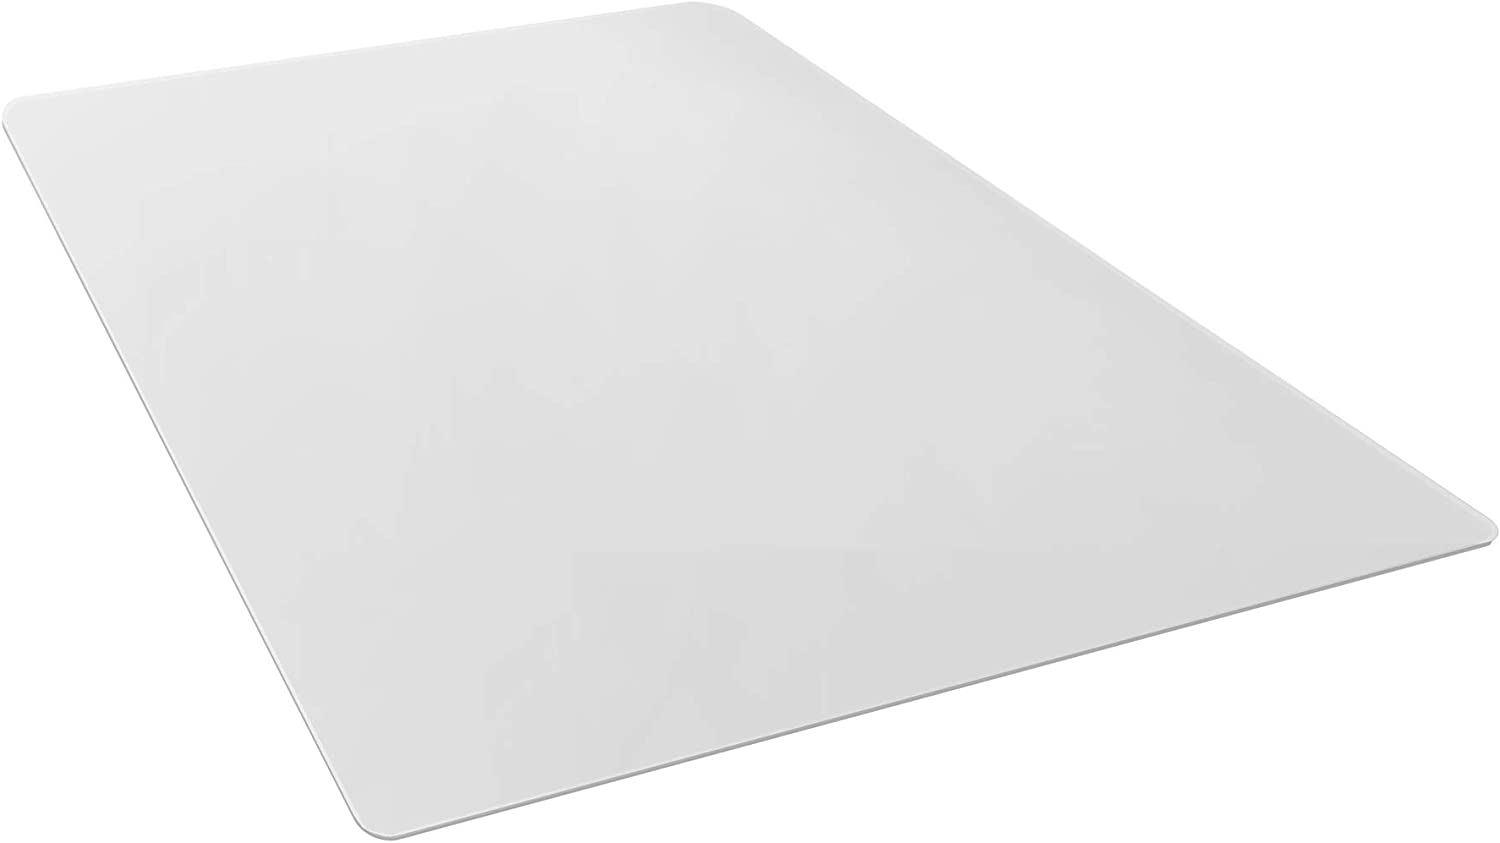 "AmazonBasics Polycarbonate Chair Mat for Hard Floors - 30"" x 47"""